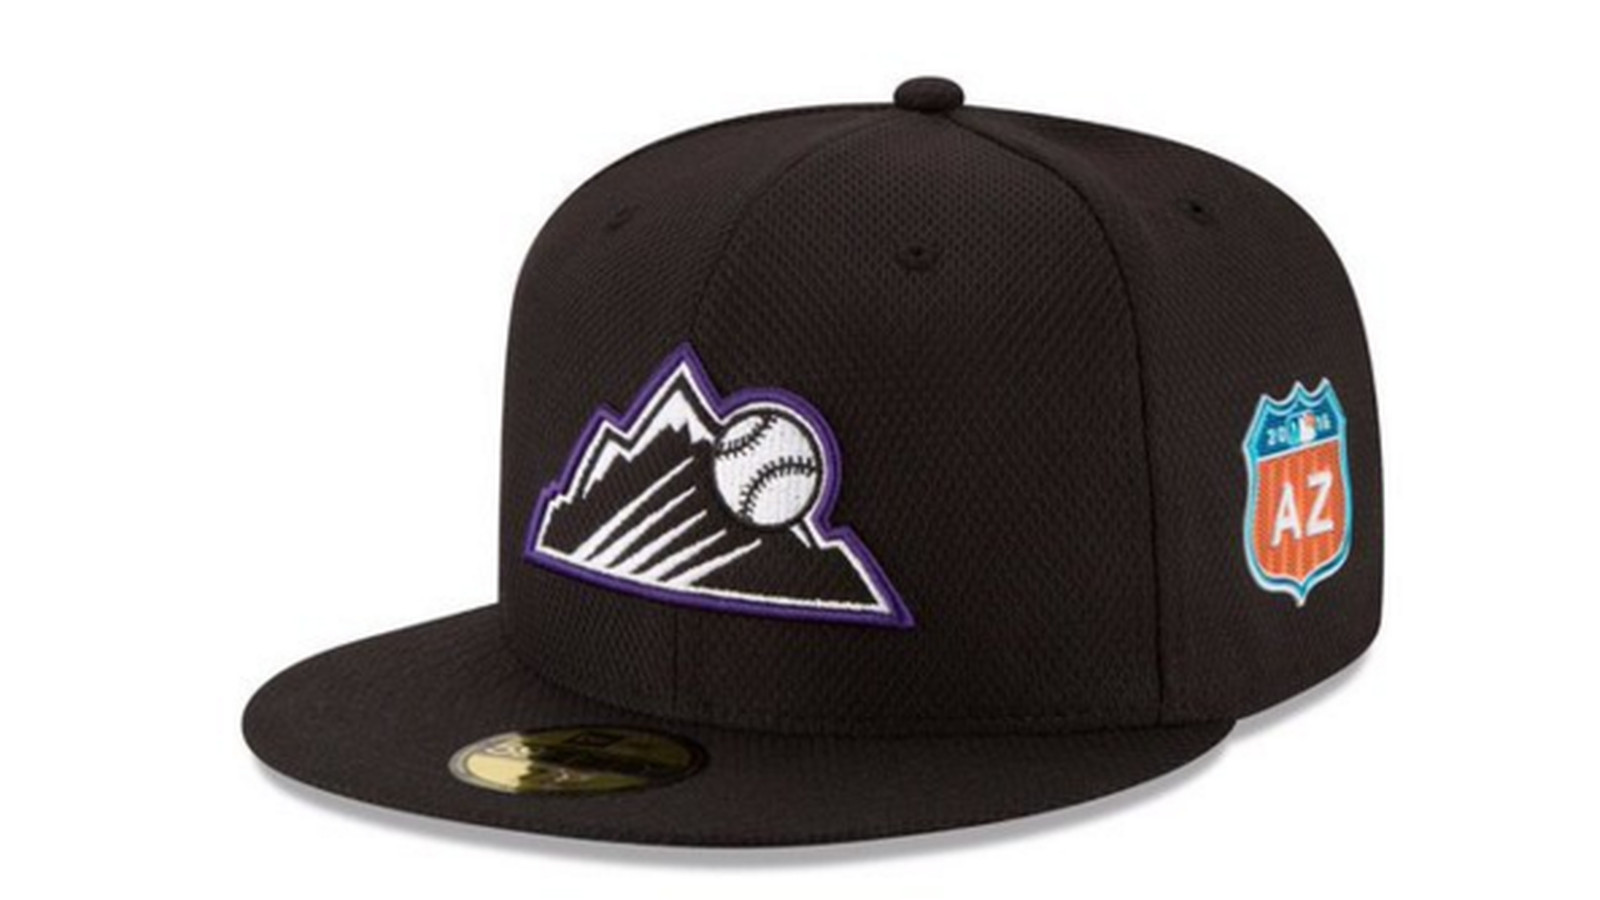 meet e7a55 a6ac8 Rockies will have new spring training gear for 2016 and the ...